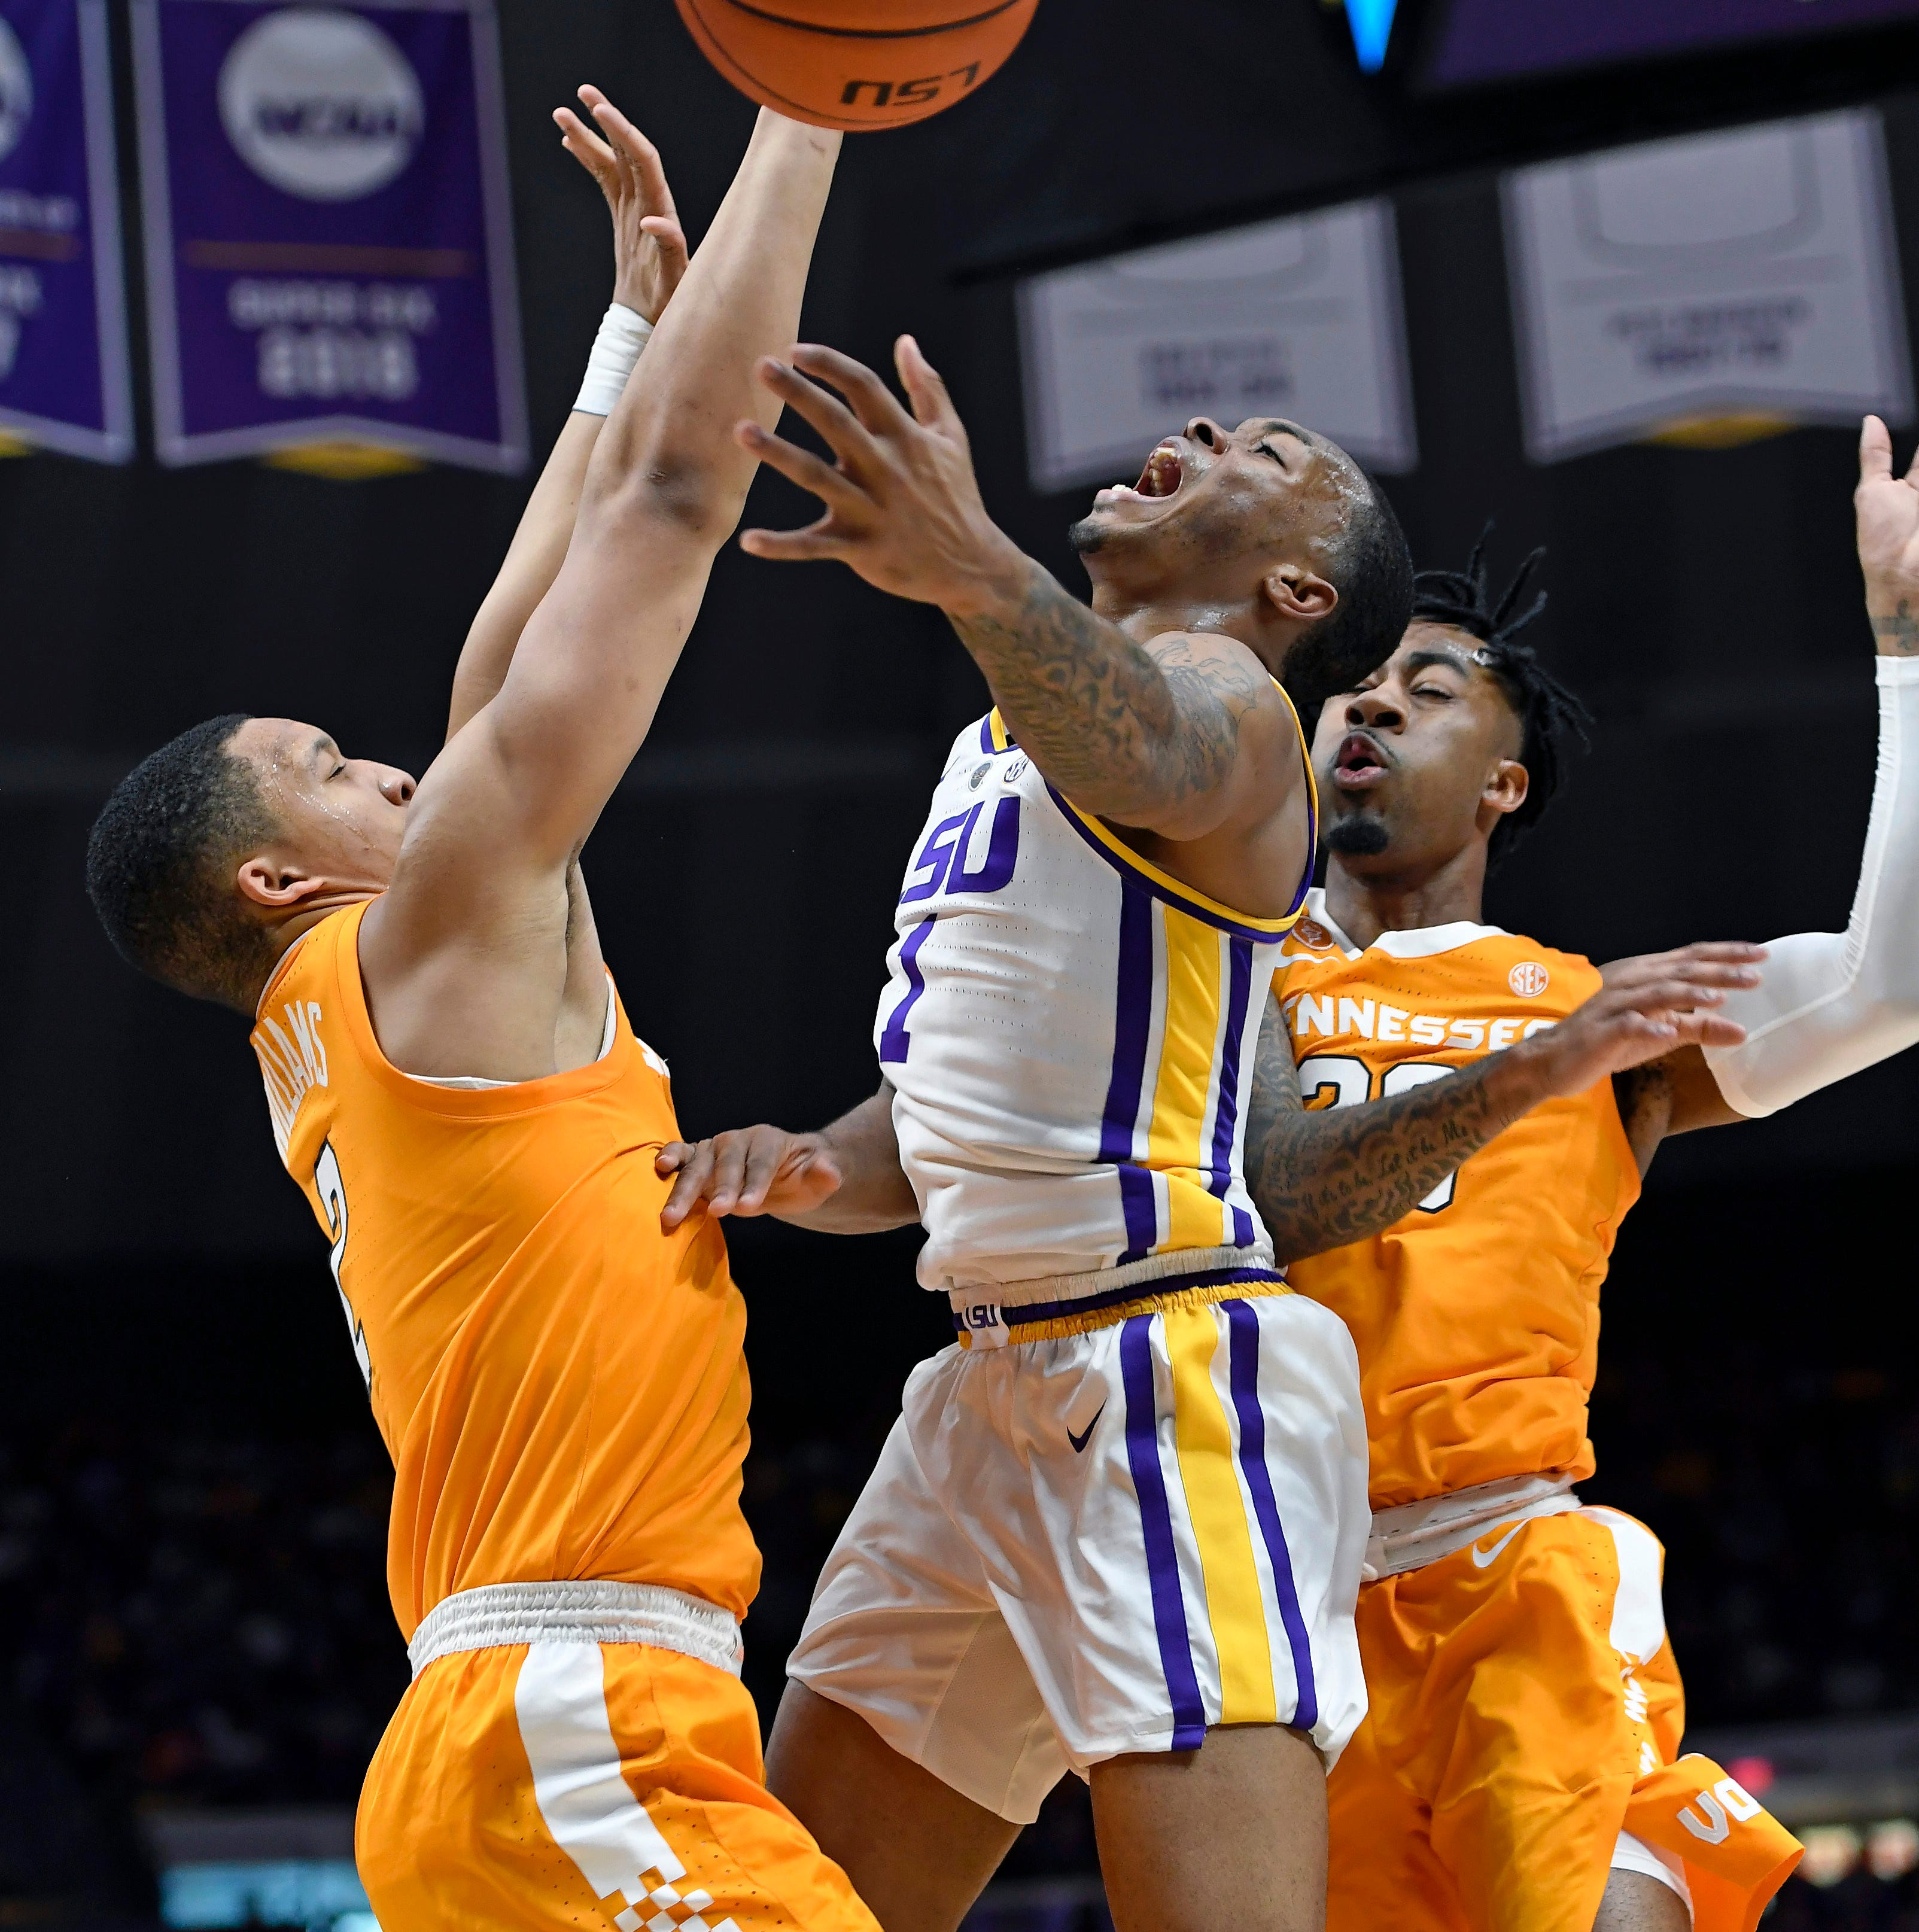 Tennessee Vols basketball: Did officials make right call in overtime loss to LSU?